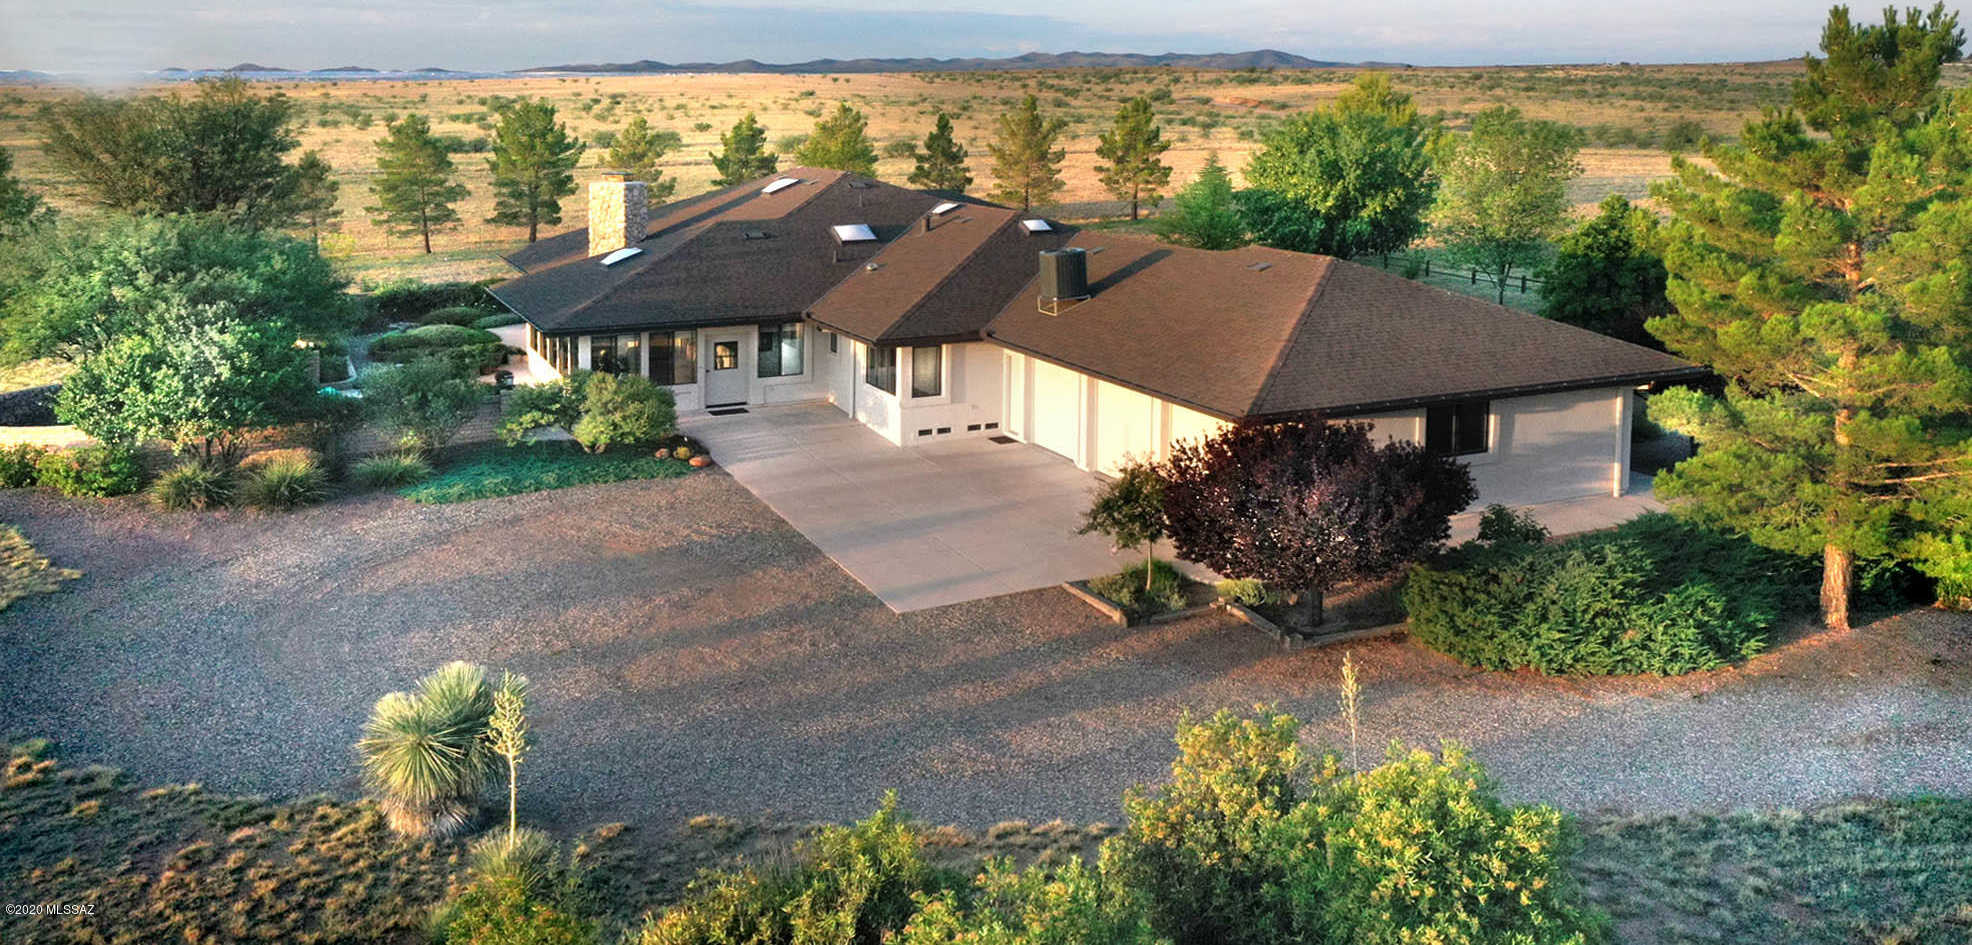 $1,880,000 - 5Br/4Ba -  for Sale in Unsubdivided, Sonoita